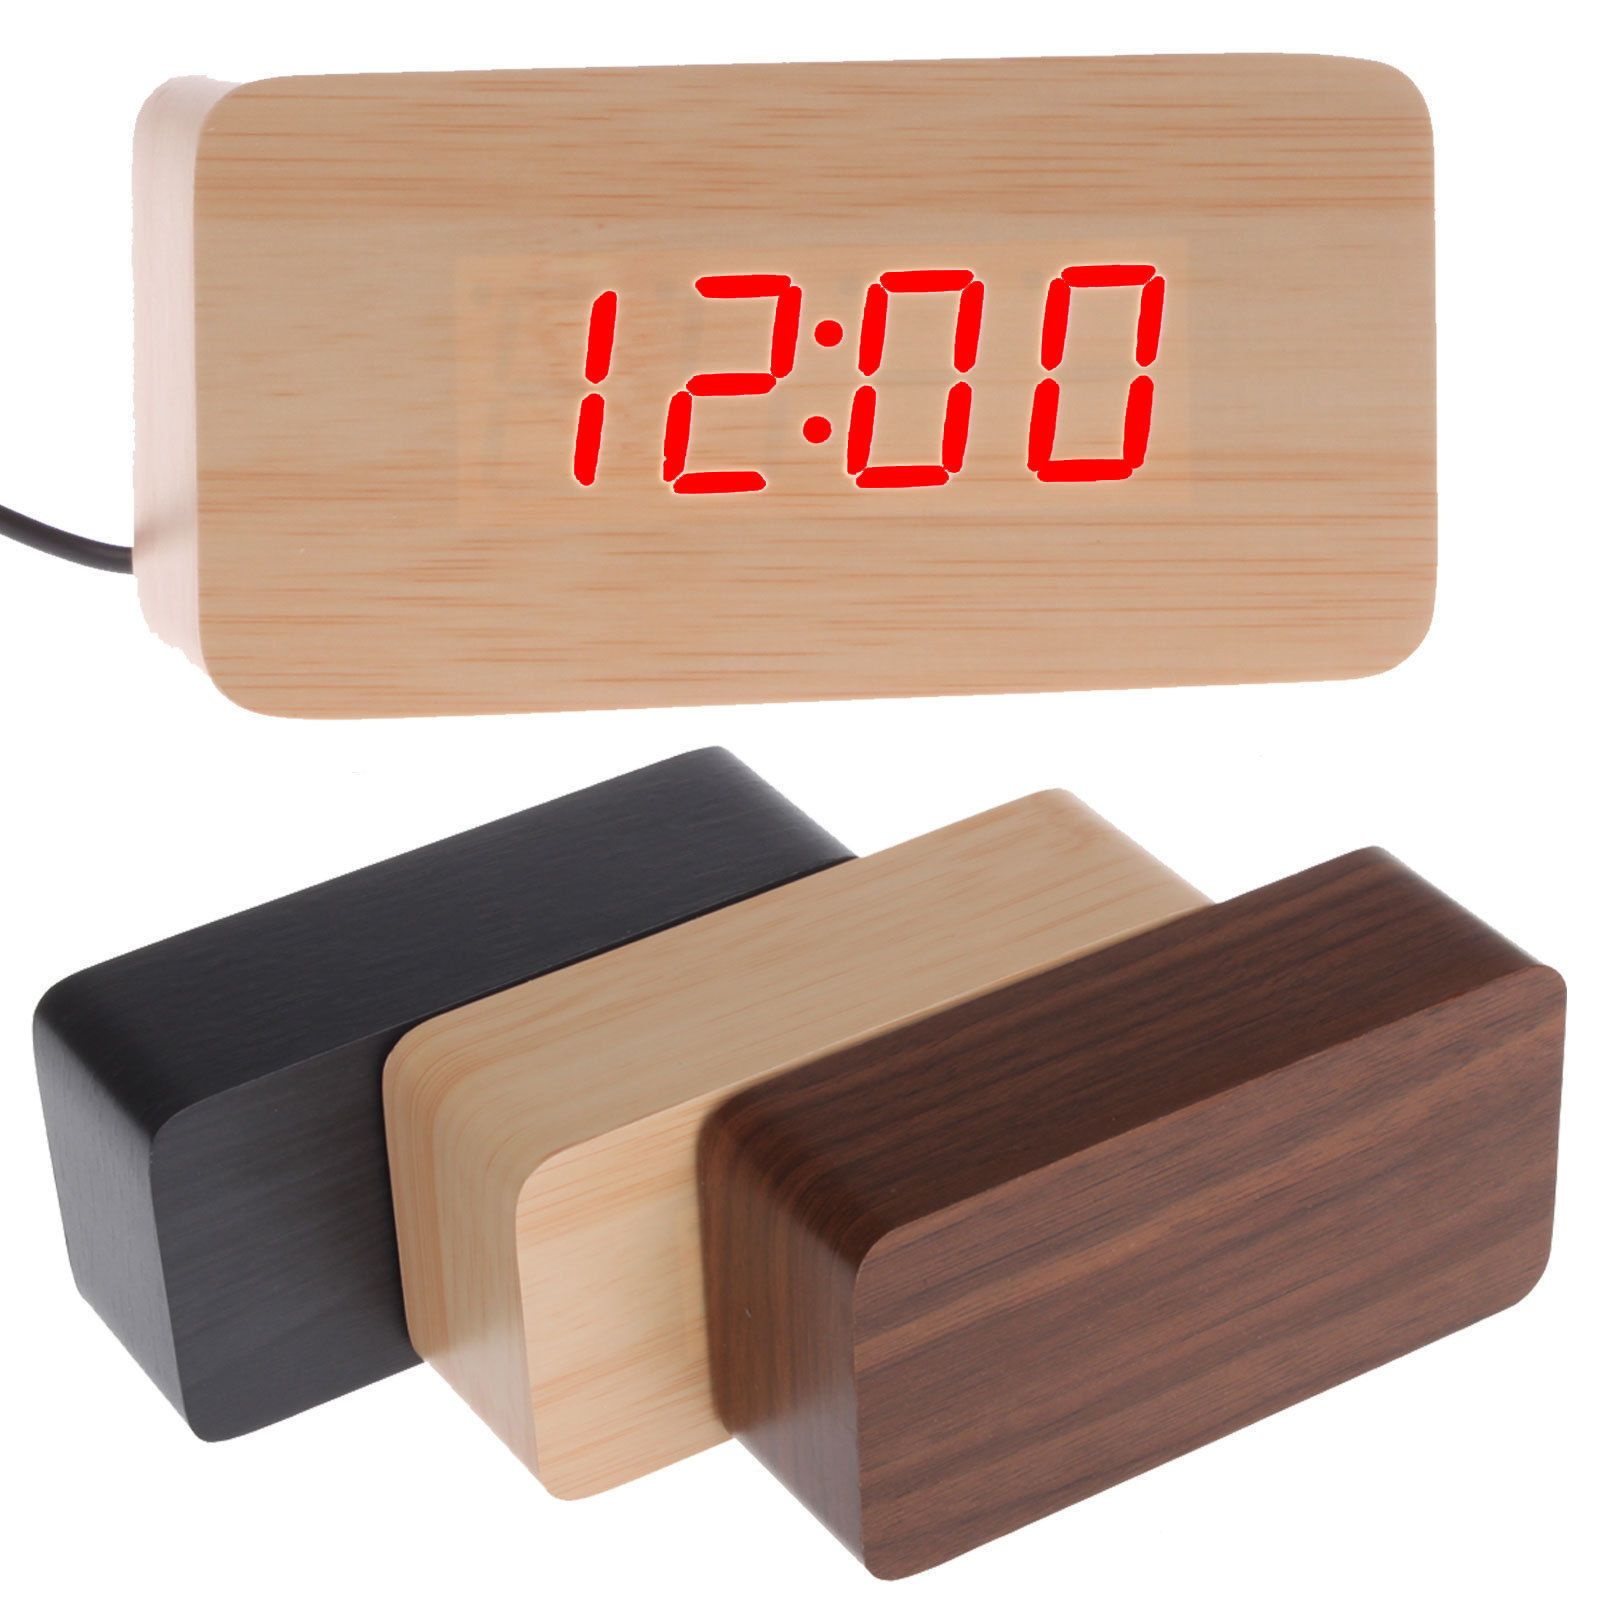 Alarm Clocks And Clock Radios 79643 Modern Wooden Wood Usb Aaa Digital Led Alarm Clock Calendar Thermometer Buy It Now Led Alarm Clock Wood Usb Alarm Clock